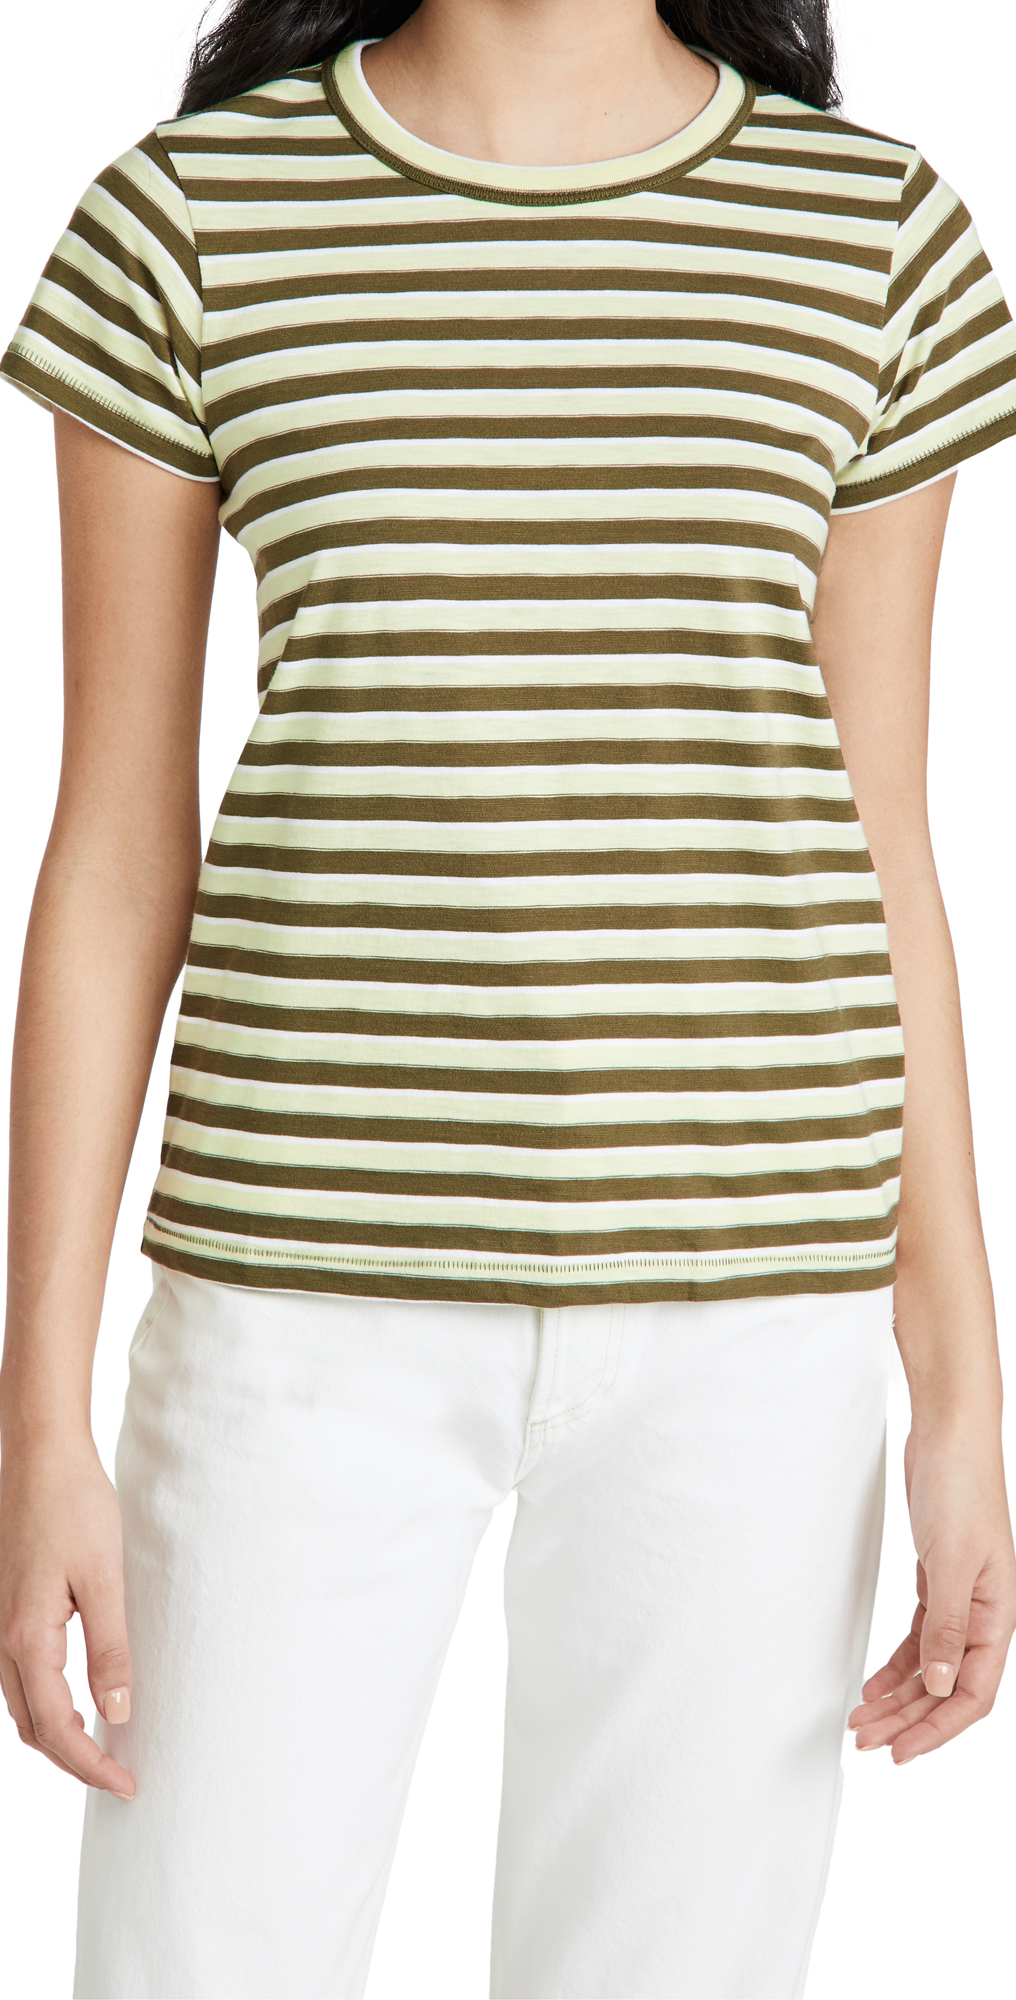 Rag & Bone THE SLUB STRIPED TEE